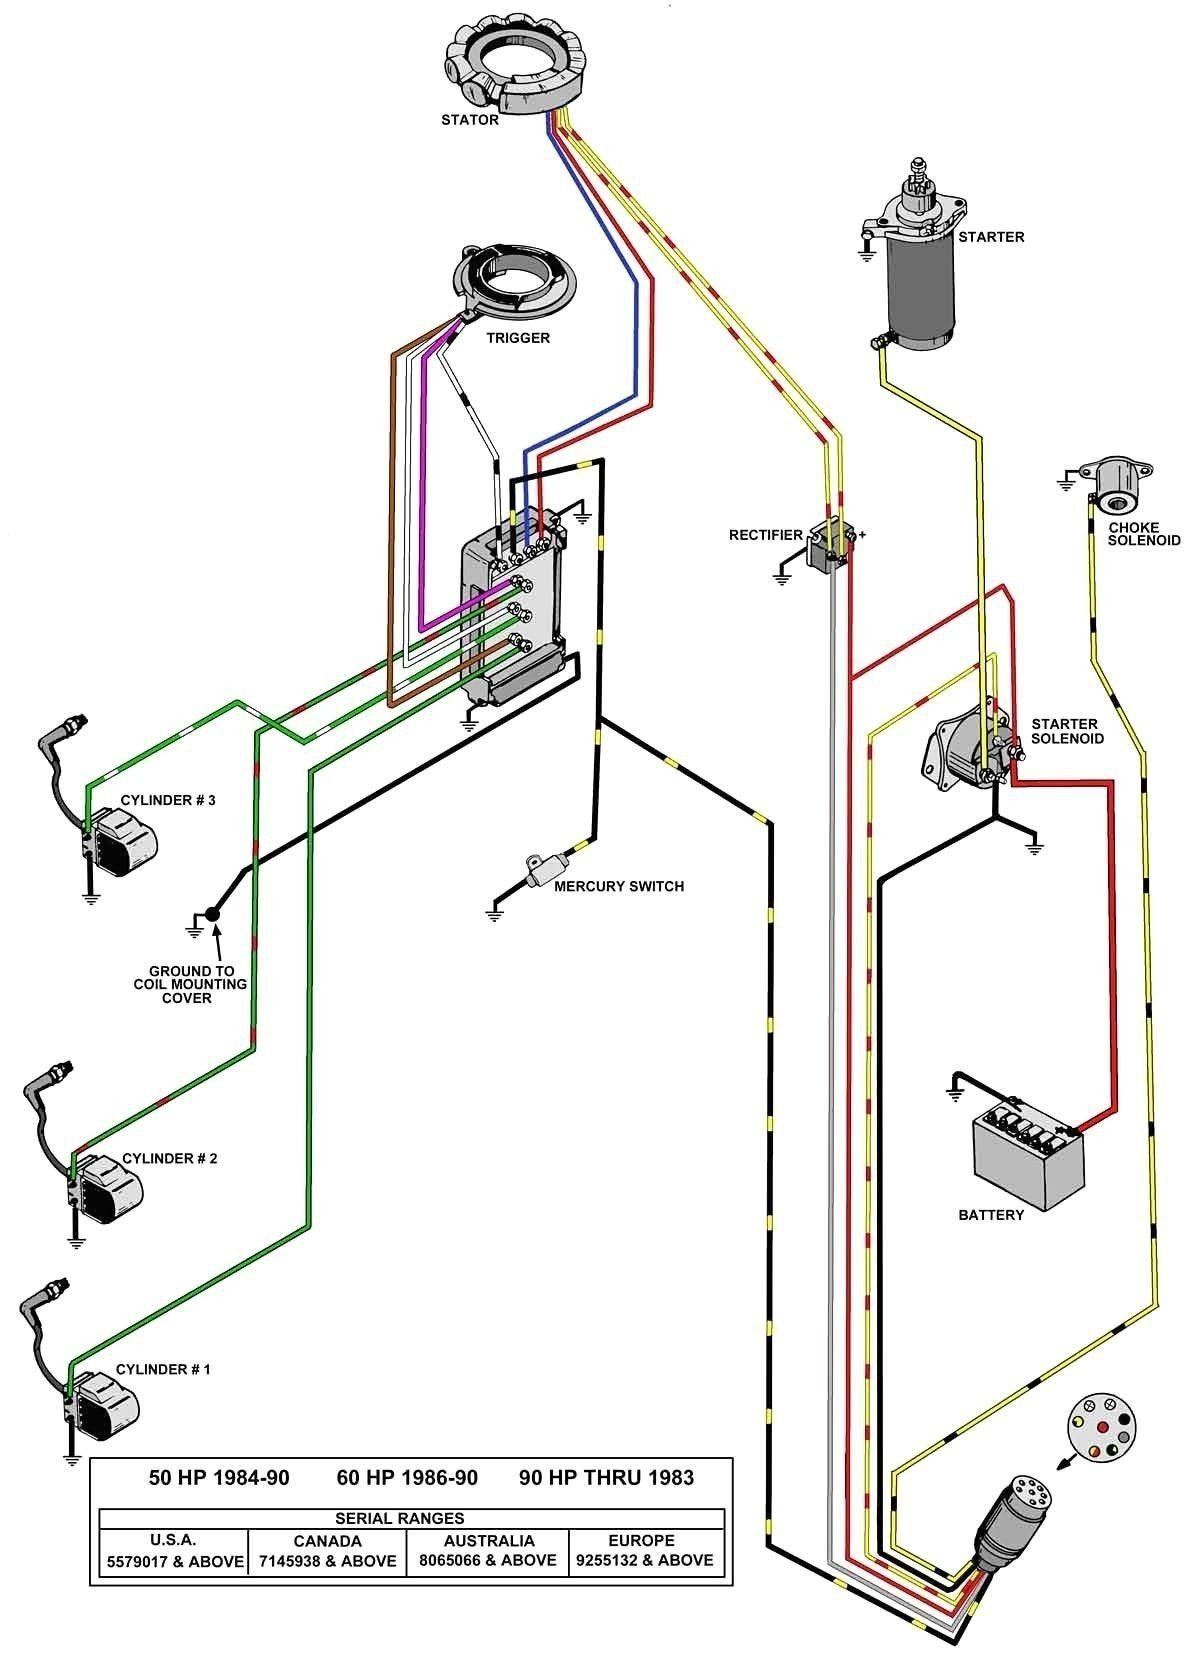 Wiring Diagram for Ignition Switch Mercury Outboard Fresh Wiring Diagram for Outboard Ignition Switch Refrence